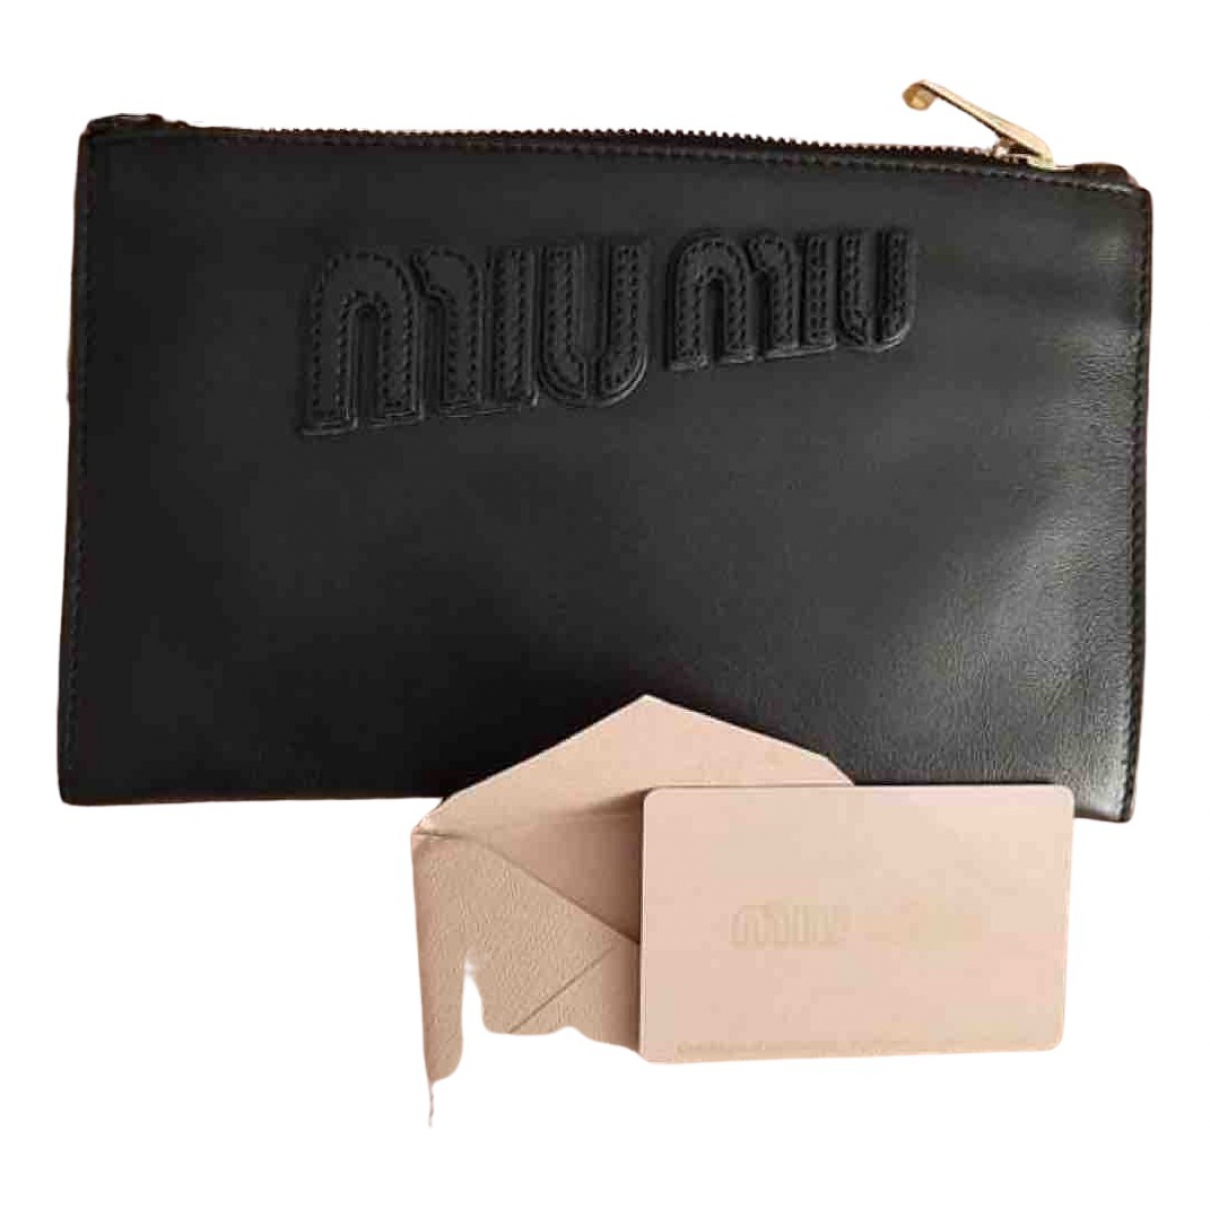 Miu Miu Miu Crystal Black Leather Clutch bag for Women N